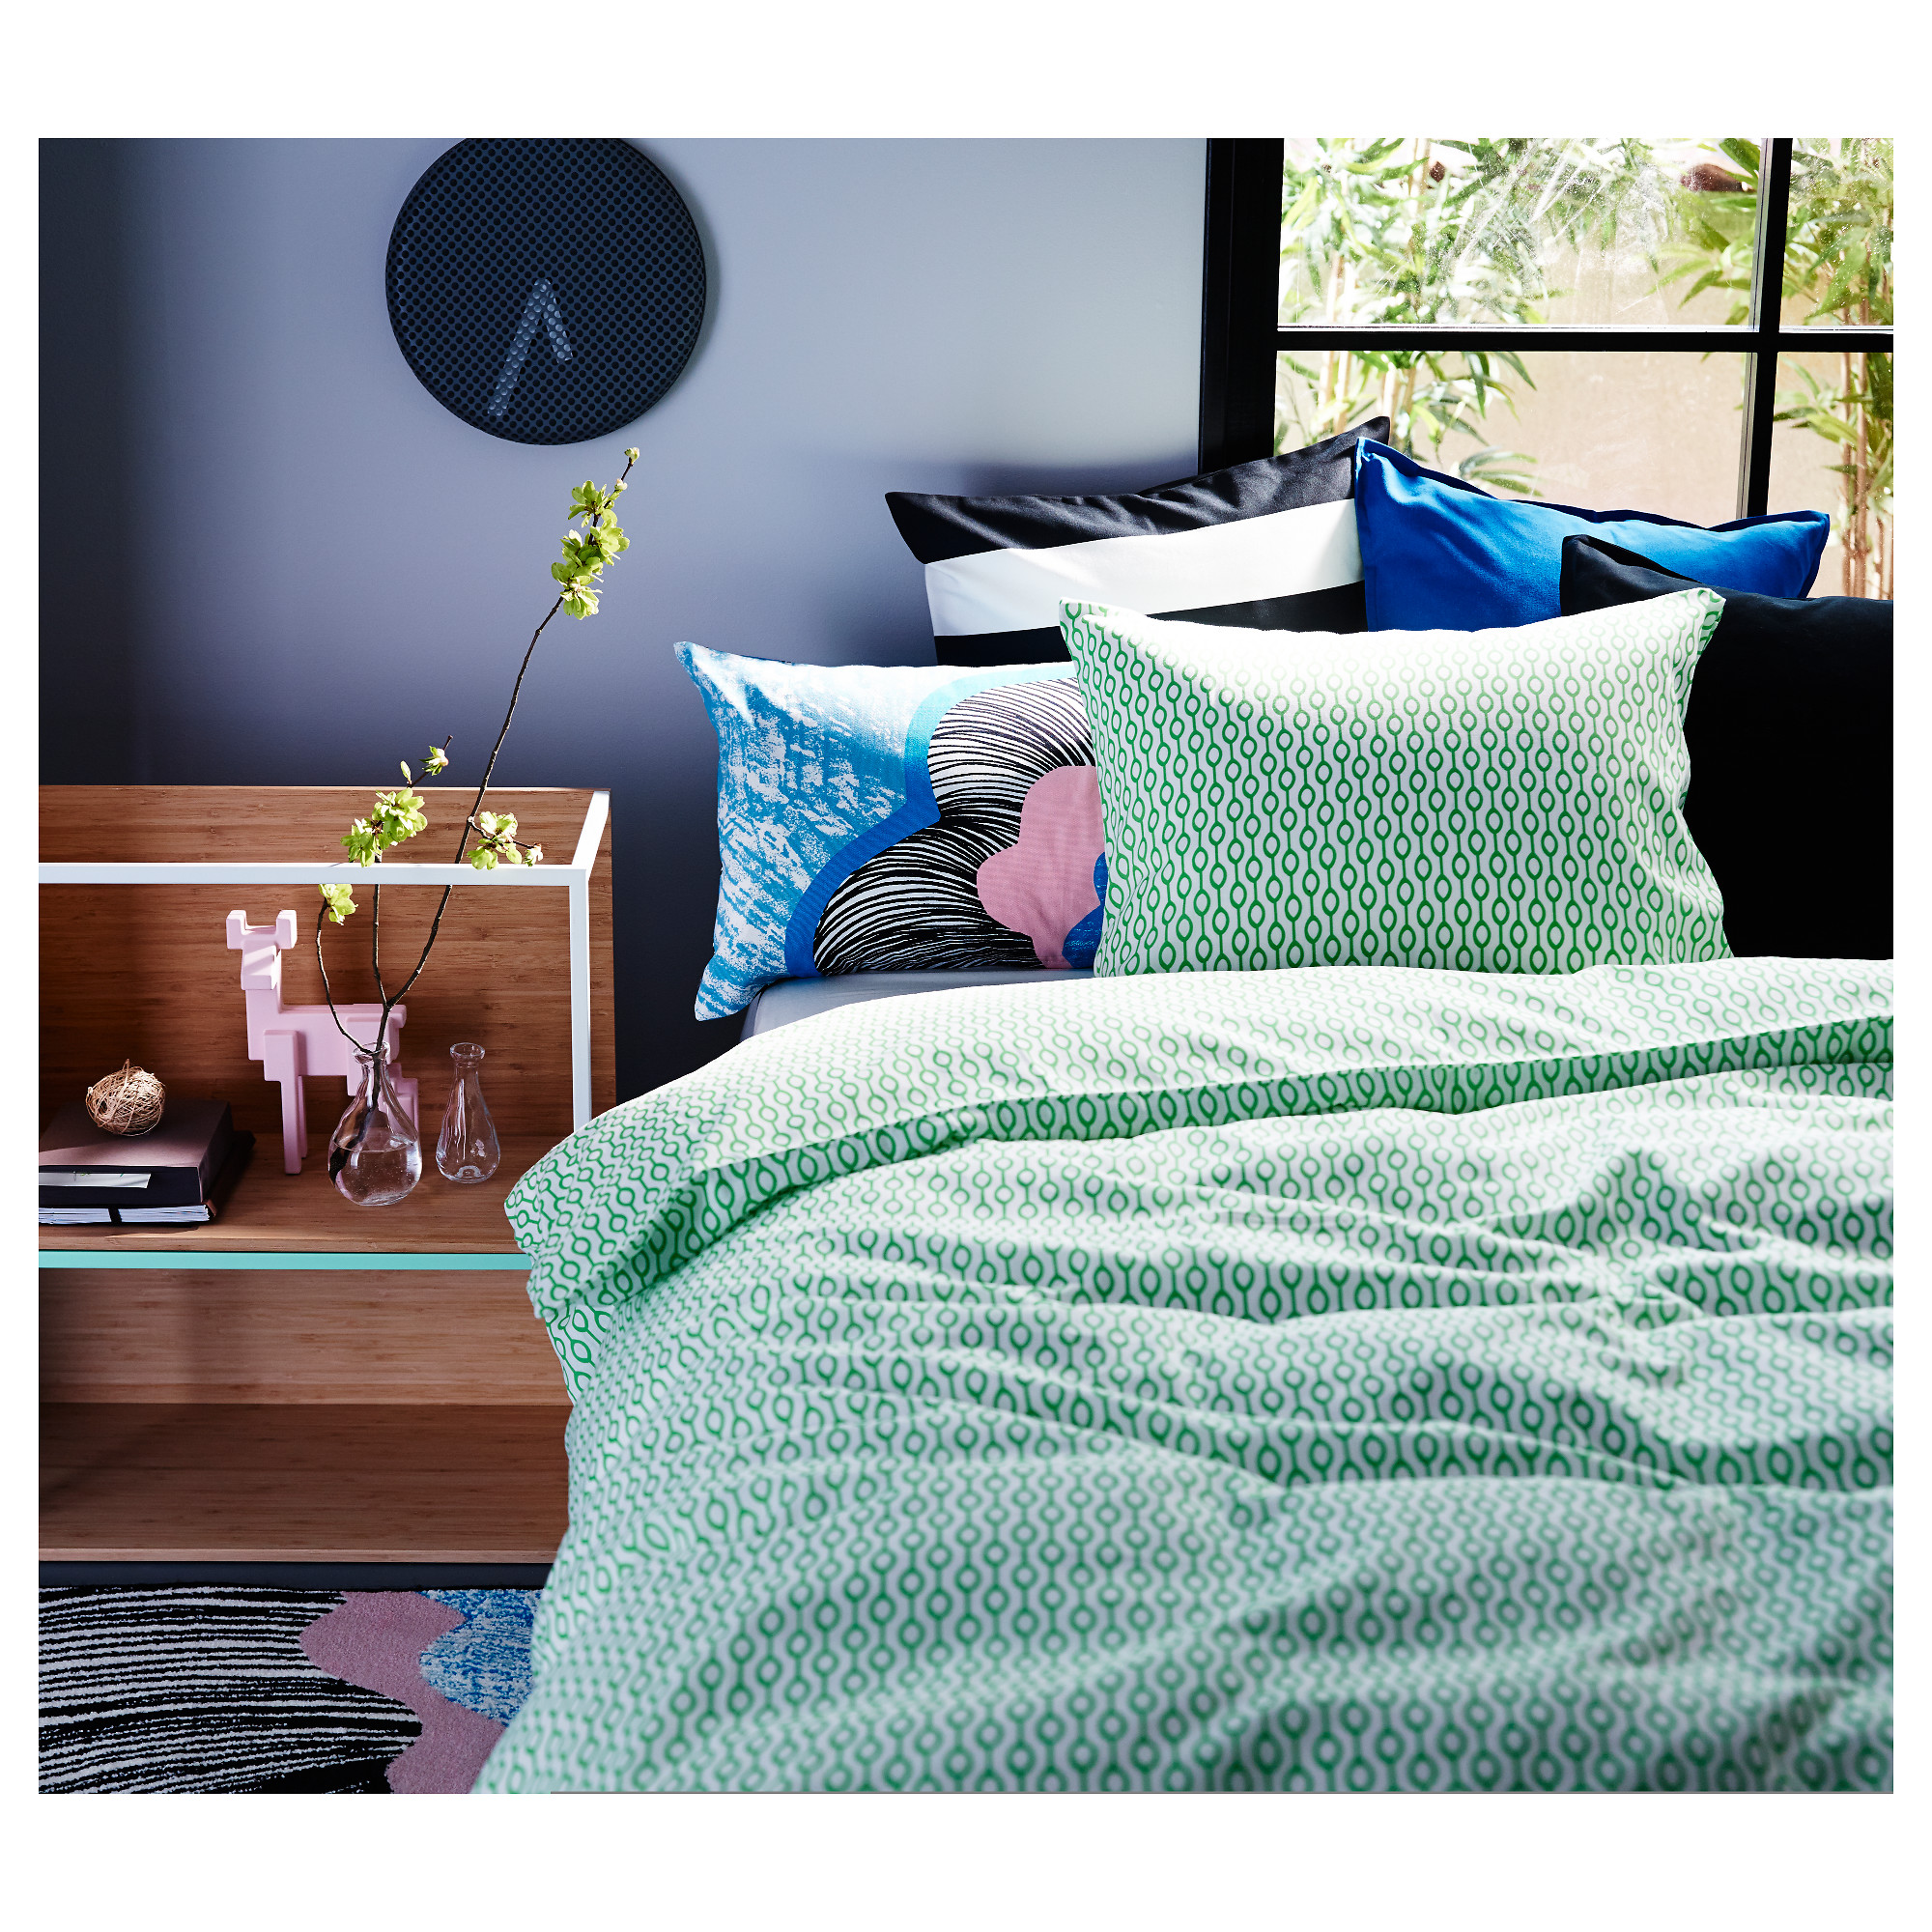 RÖdved Duvet Cover And Pillowcase S Full Queen Double Ikea